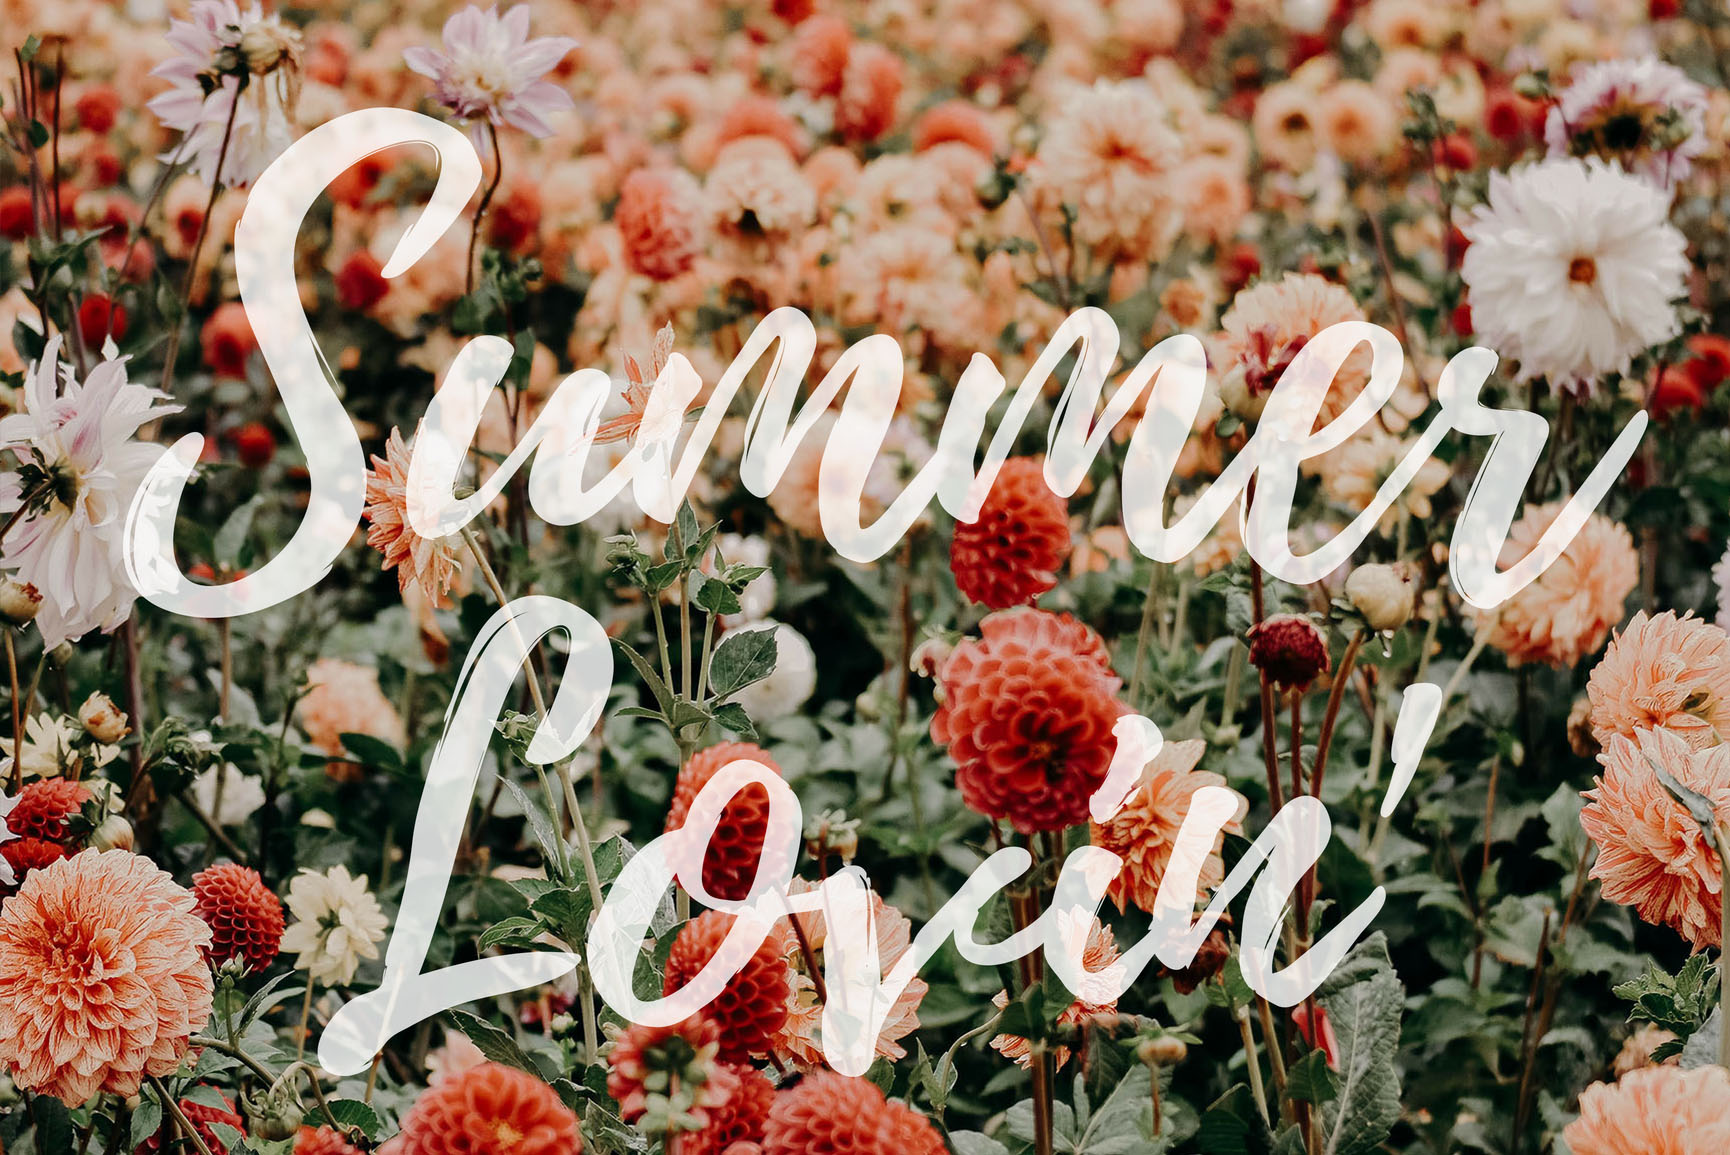 Summer Lovin' Quotes iPhone Wallpaper Collection